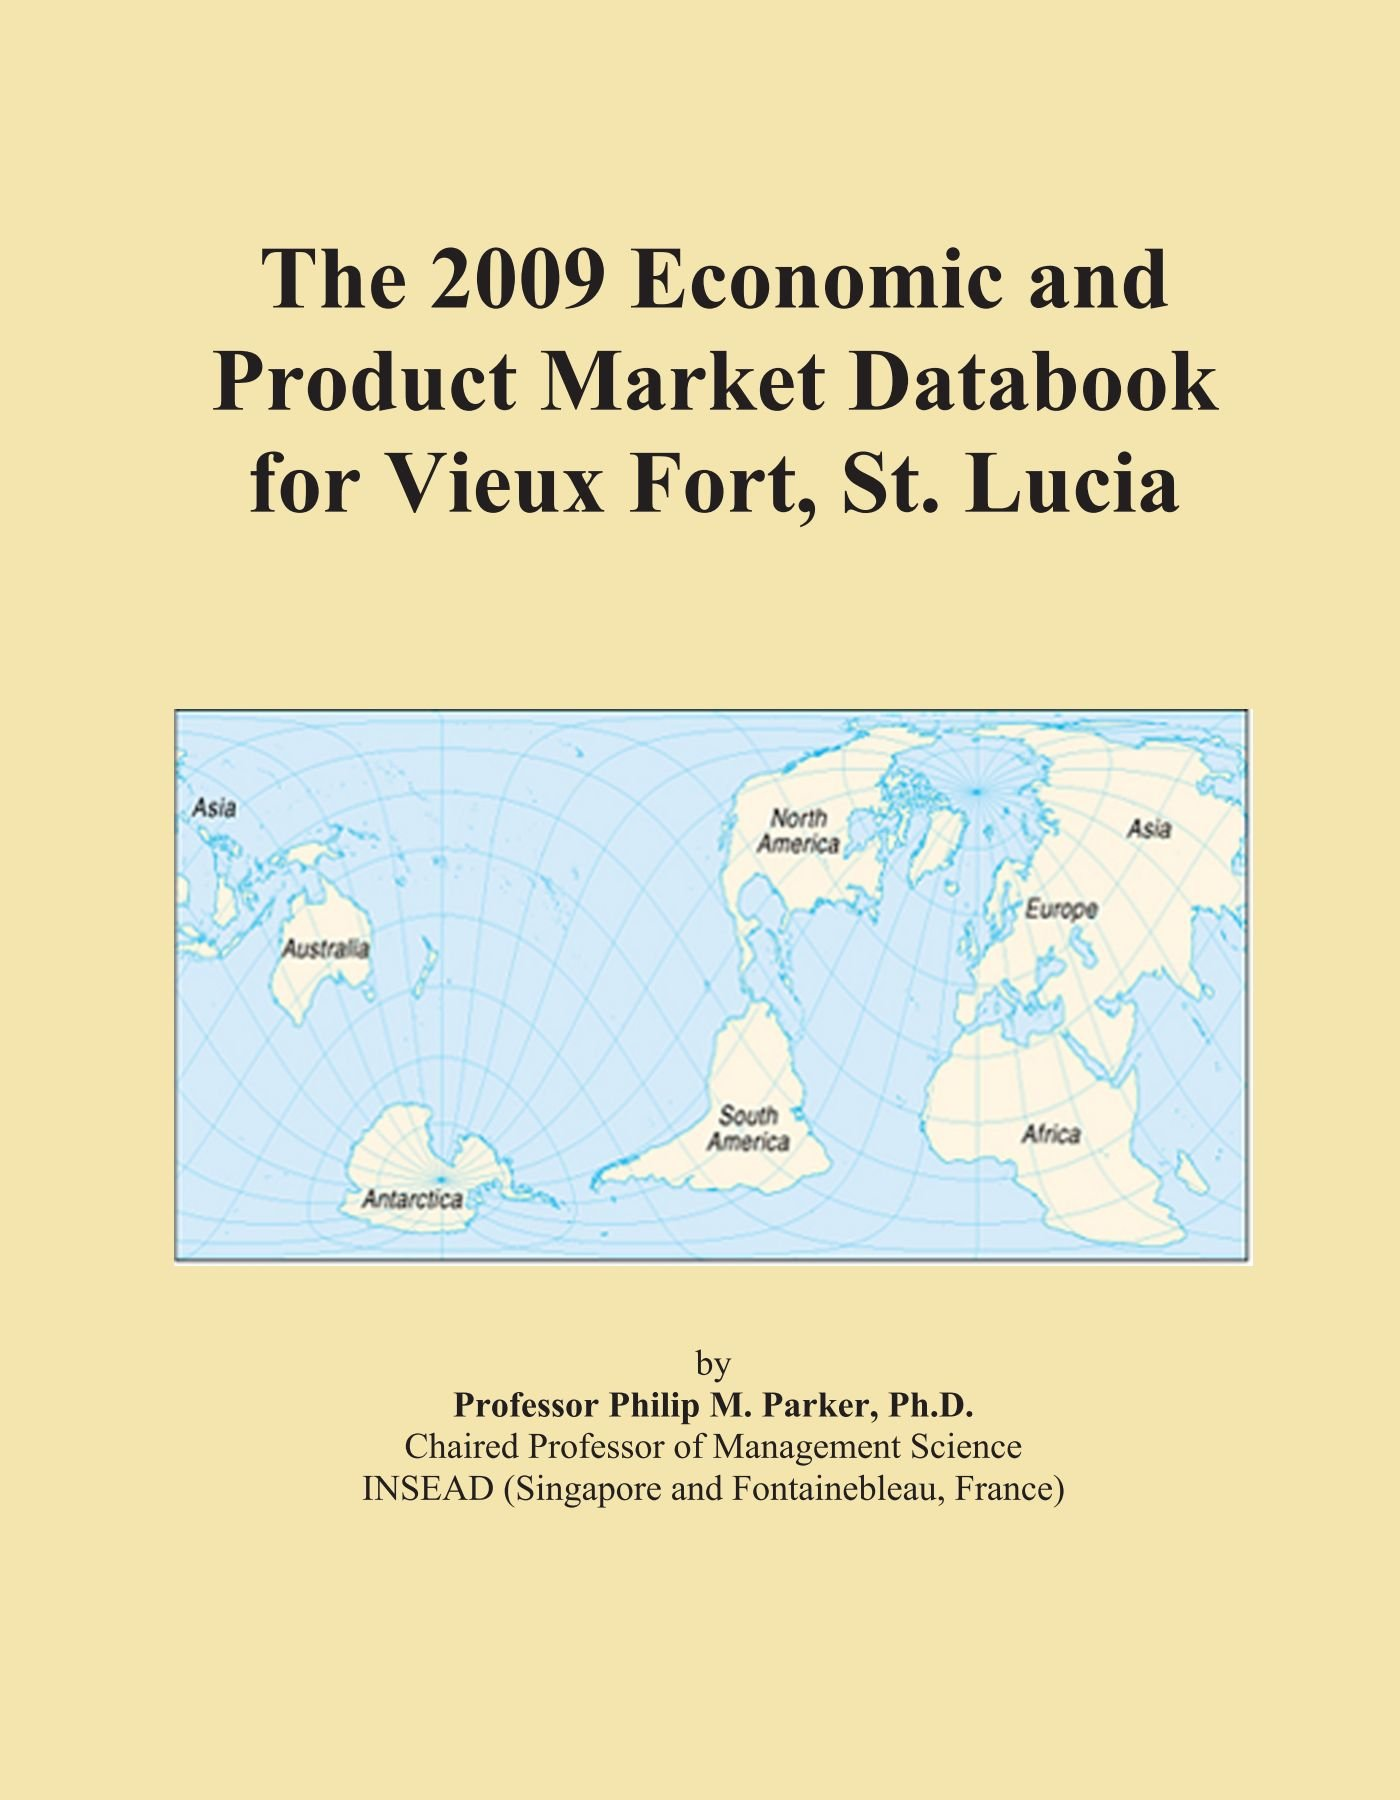 Download The 2009 Economic and Product Market Databook for Vieux Fort, St. Lucia PDF